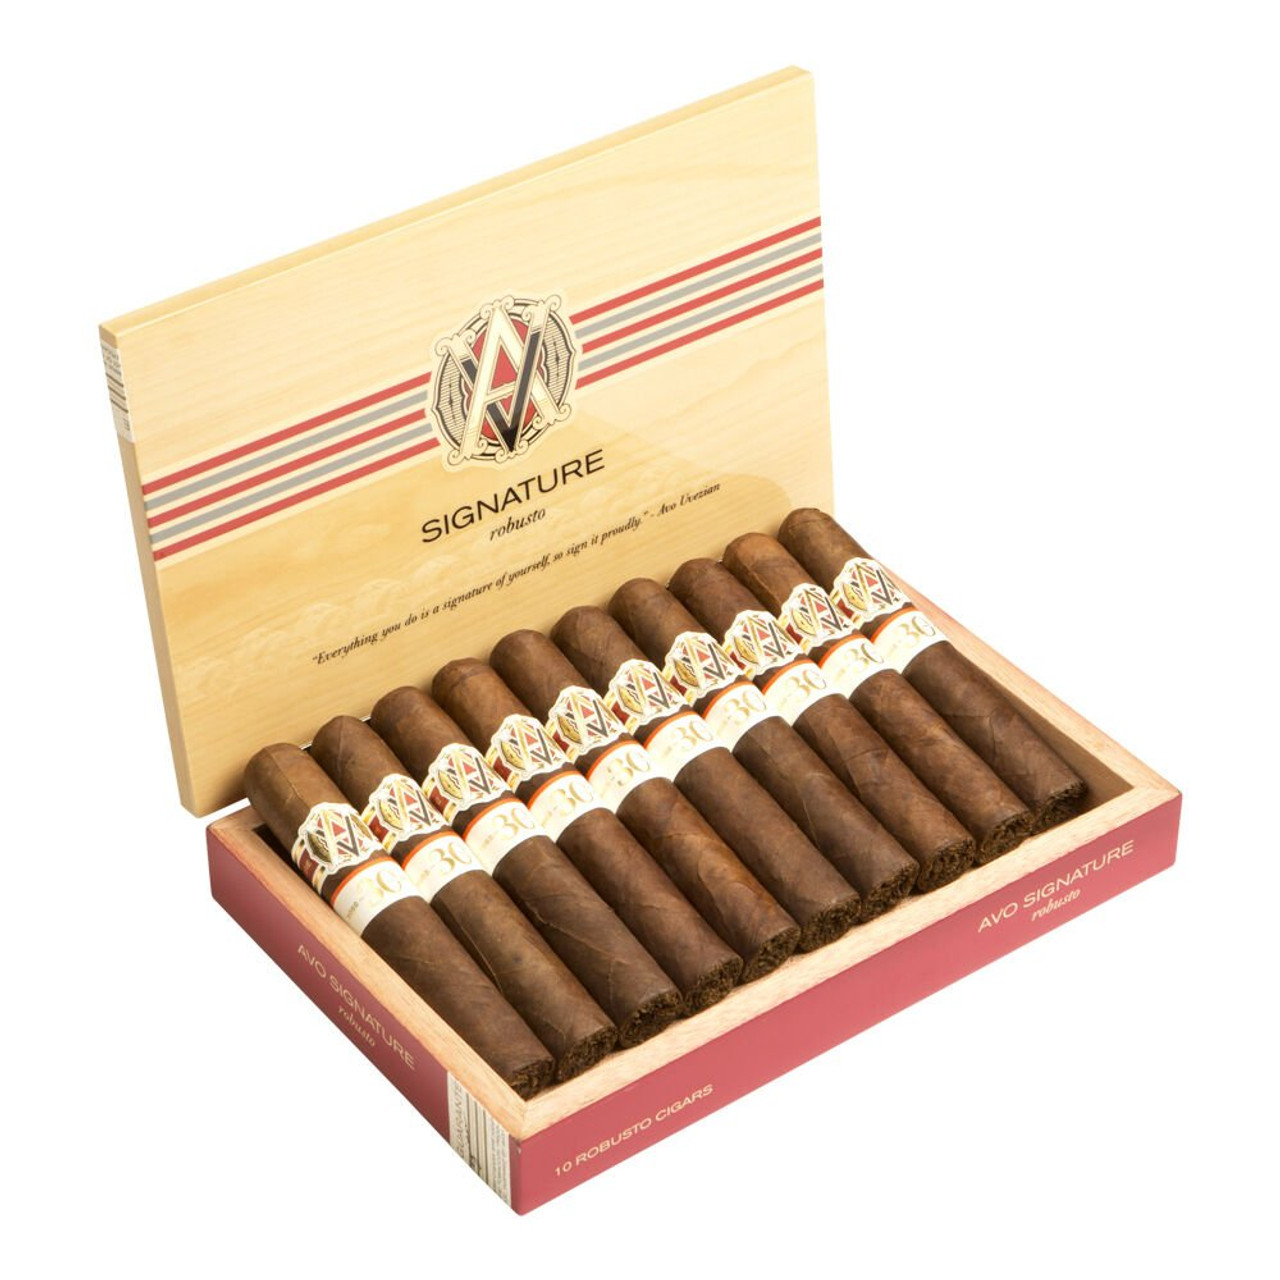 AVO 30 Years Limited Edition Redux Cigars - 5.38 x 50 (Box of 20)